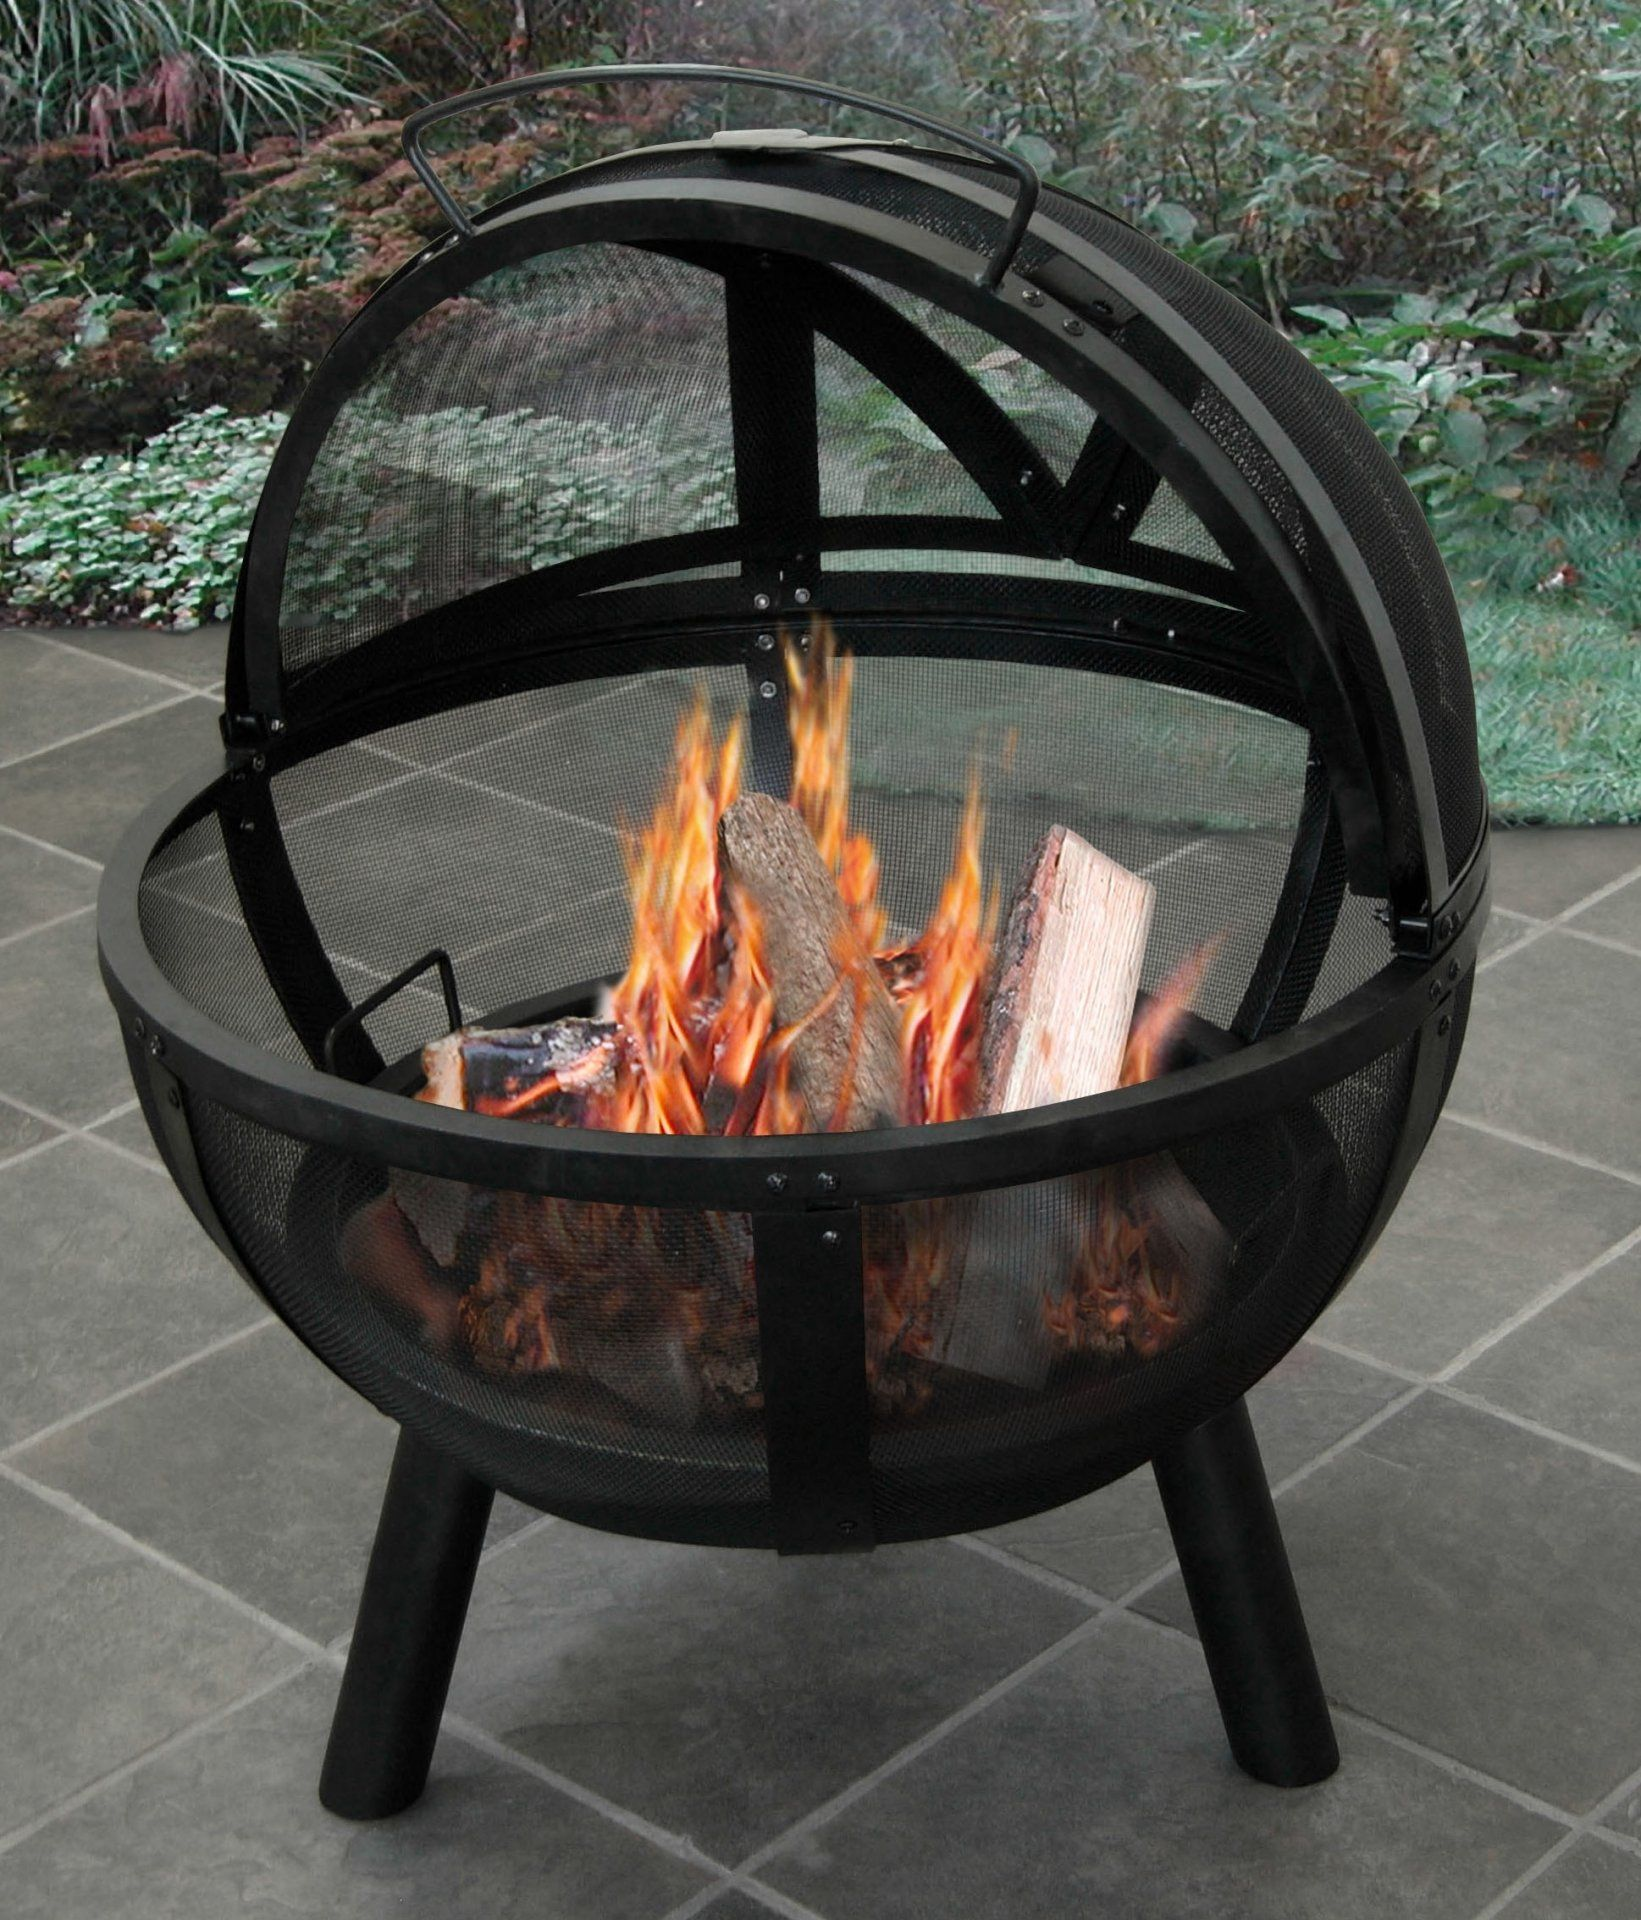 Pin By Siippari On Puutarha Wood Burning Fire Pit Fire Pit Backyard Fire Pit